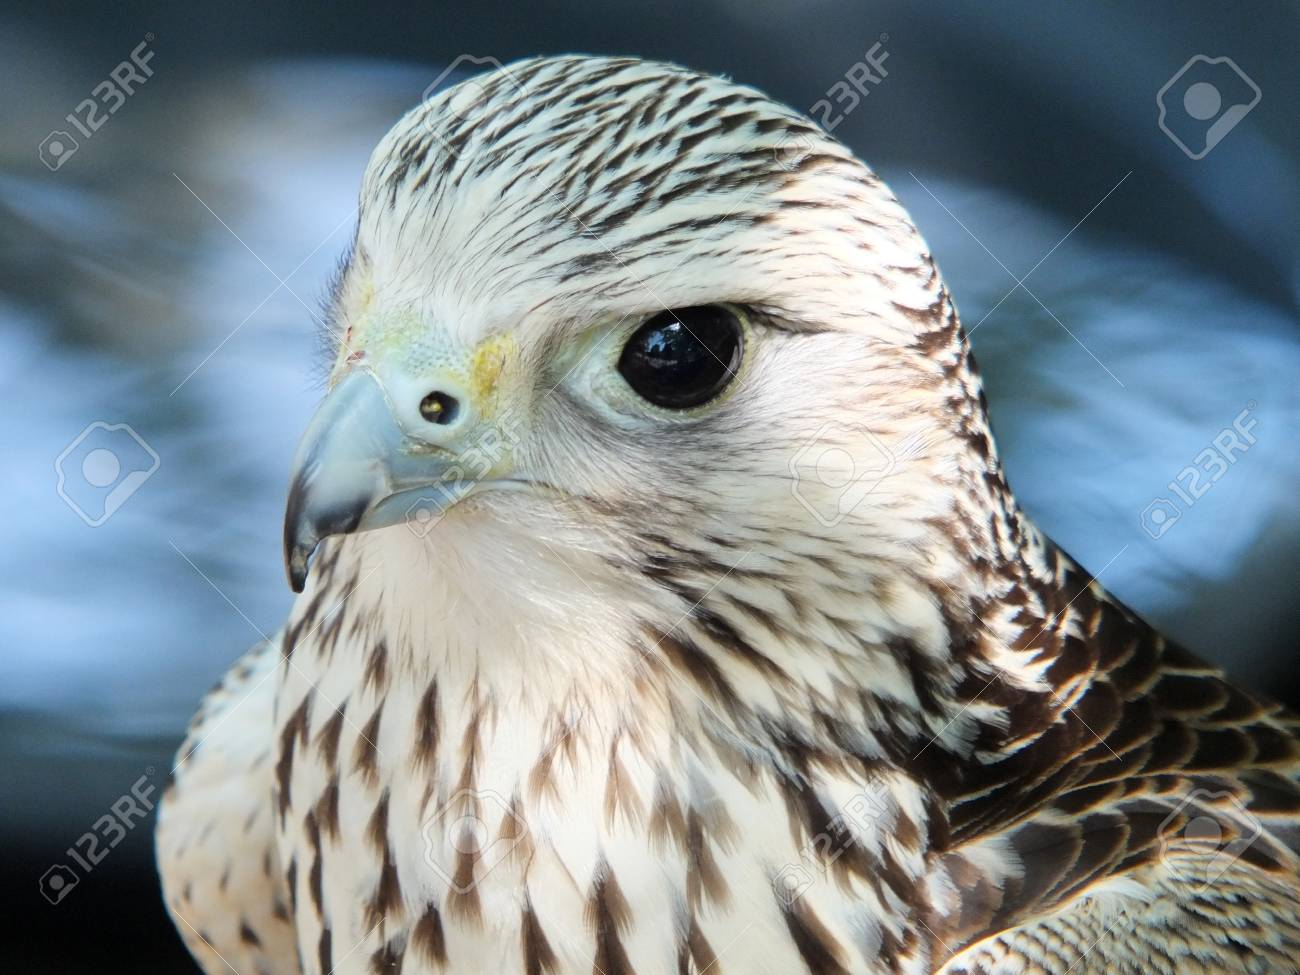 Close Up Of A Kestrel Looking Stock Photo